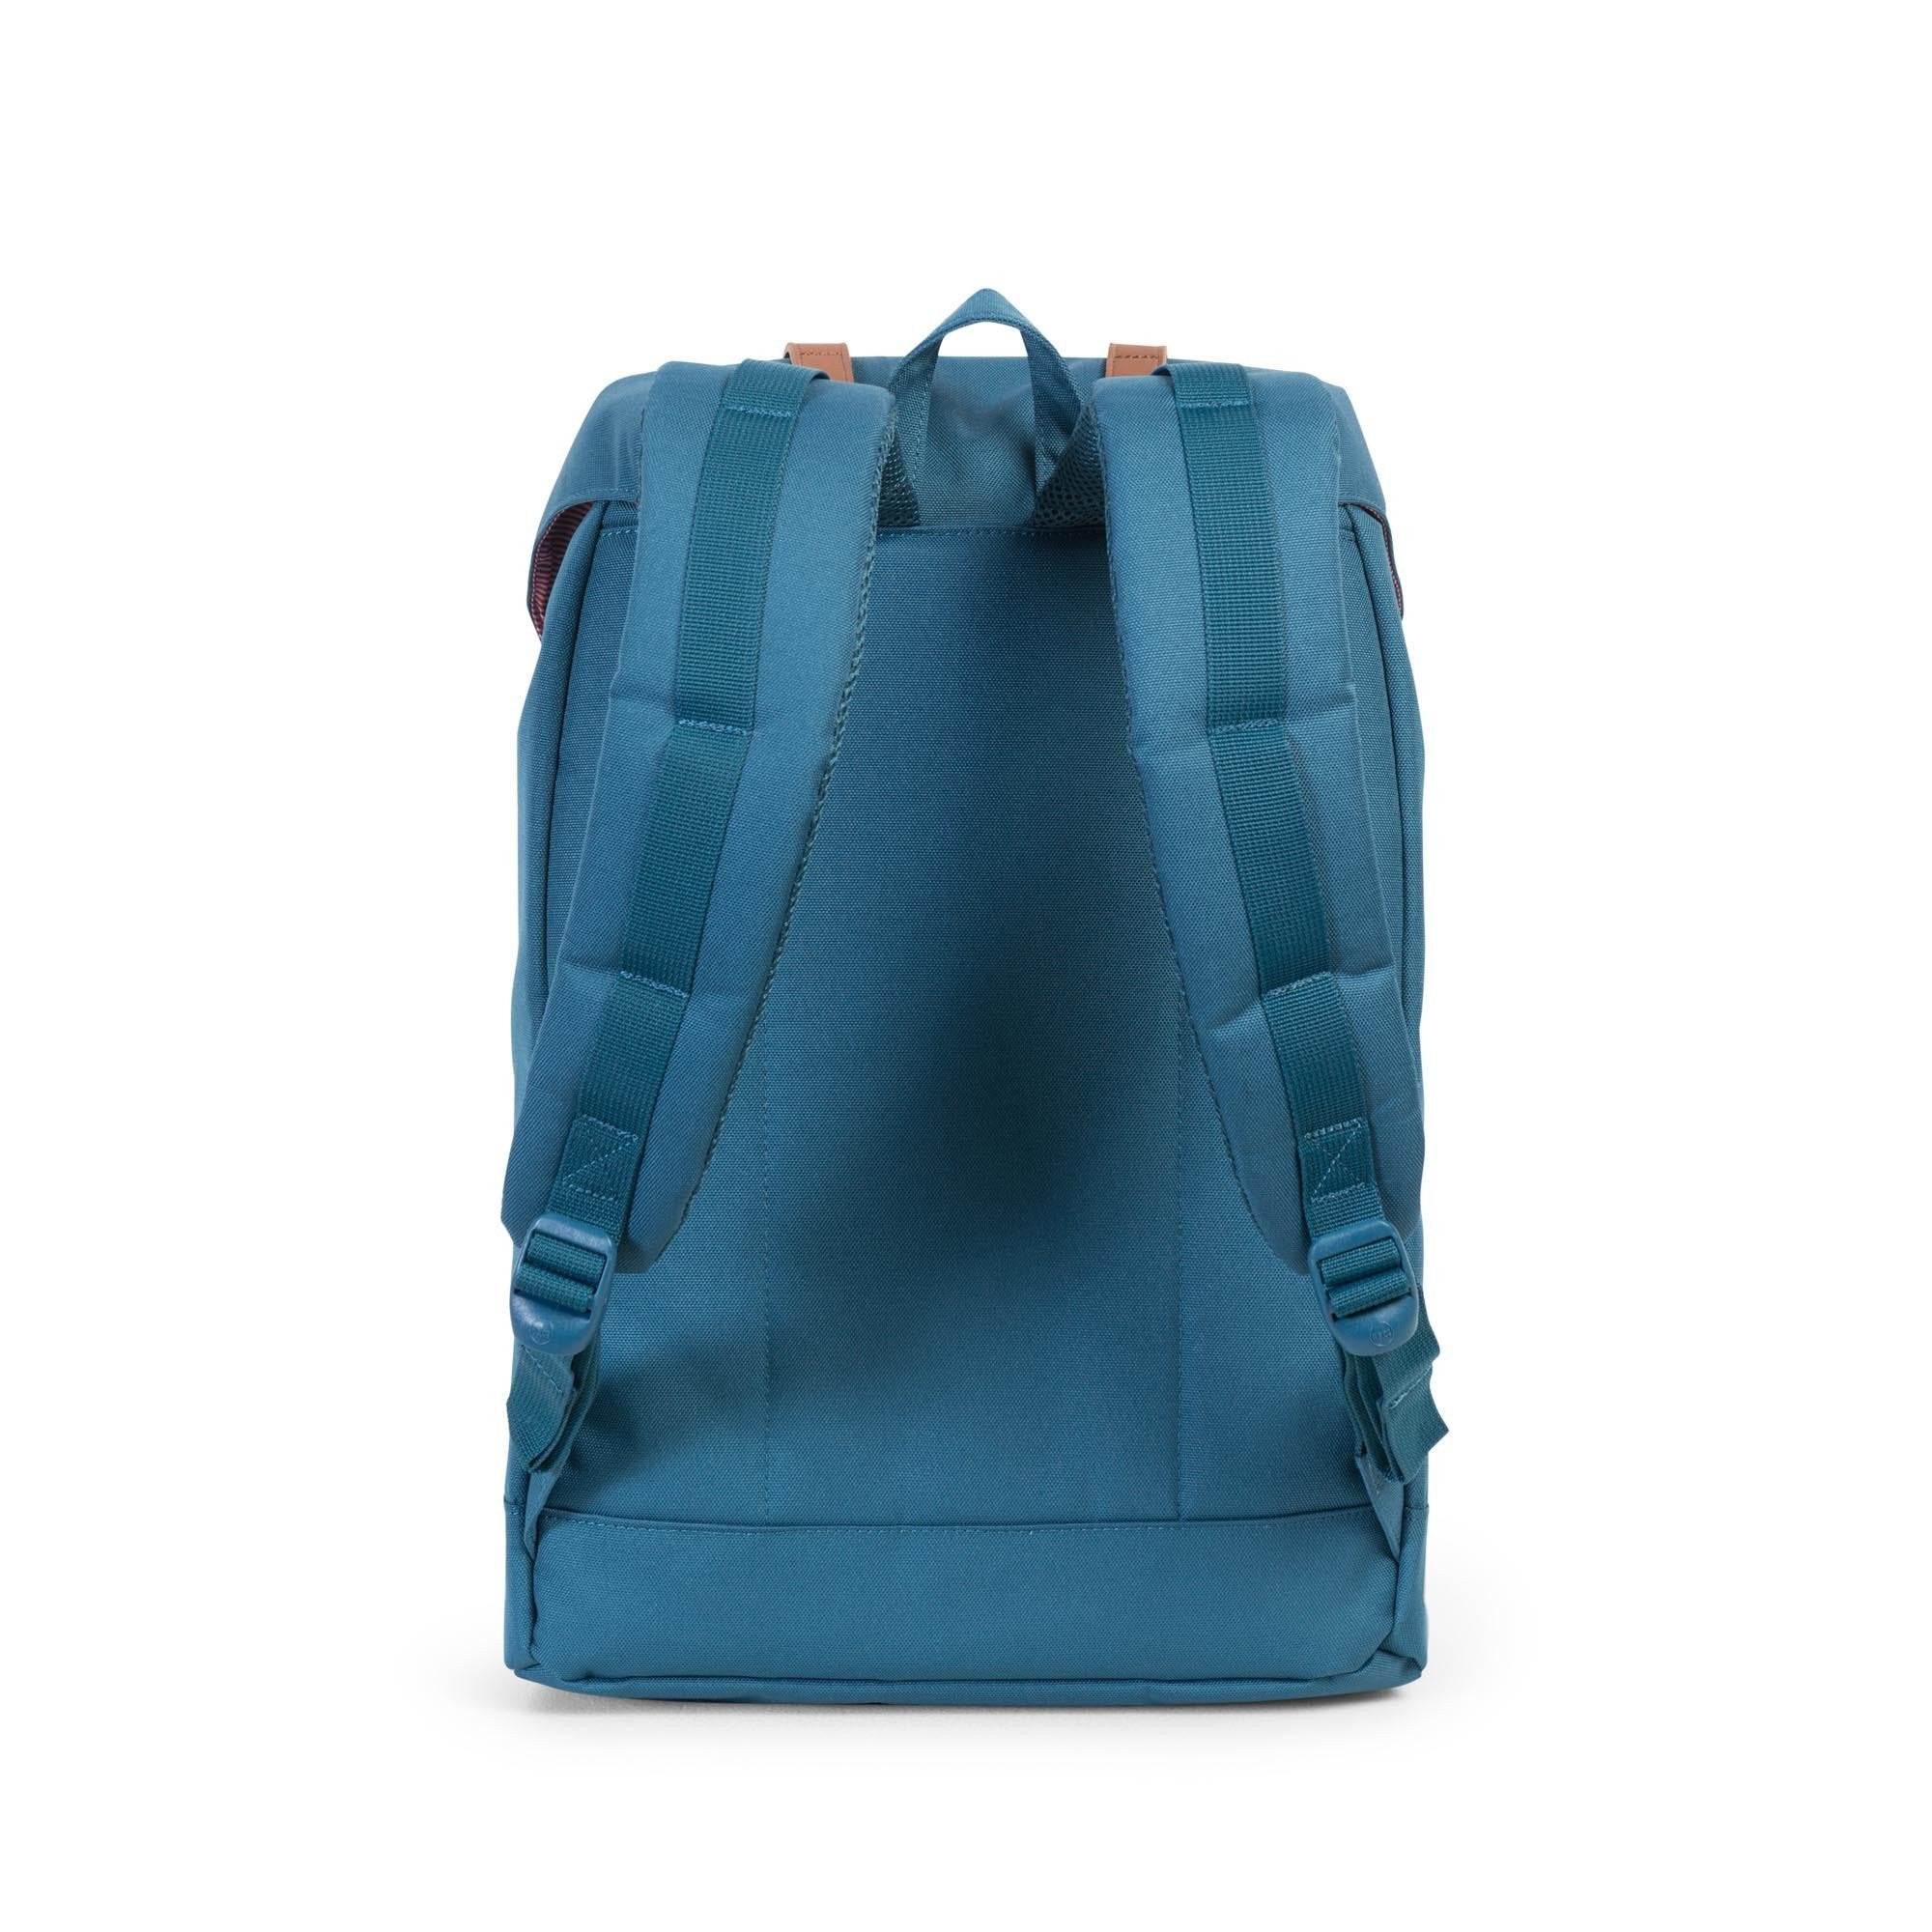 Herschel Supply Co. - Retreat Backpack, Indian Teal - The Giant Peach - 4